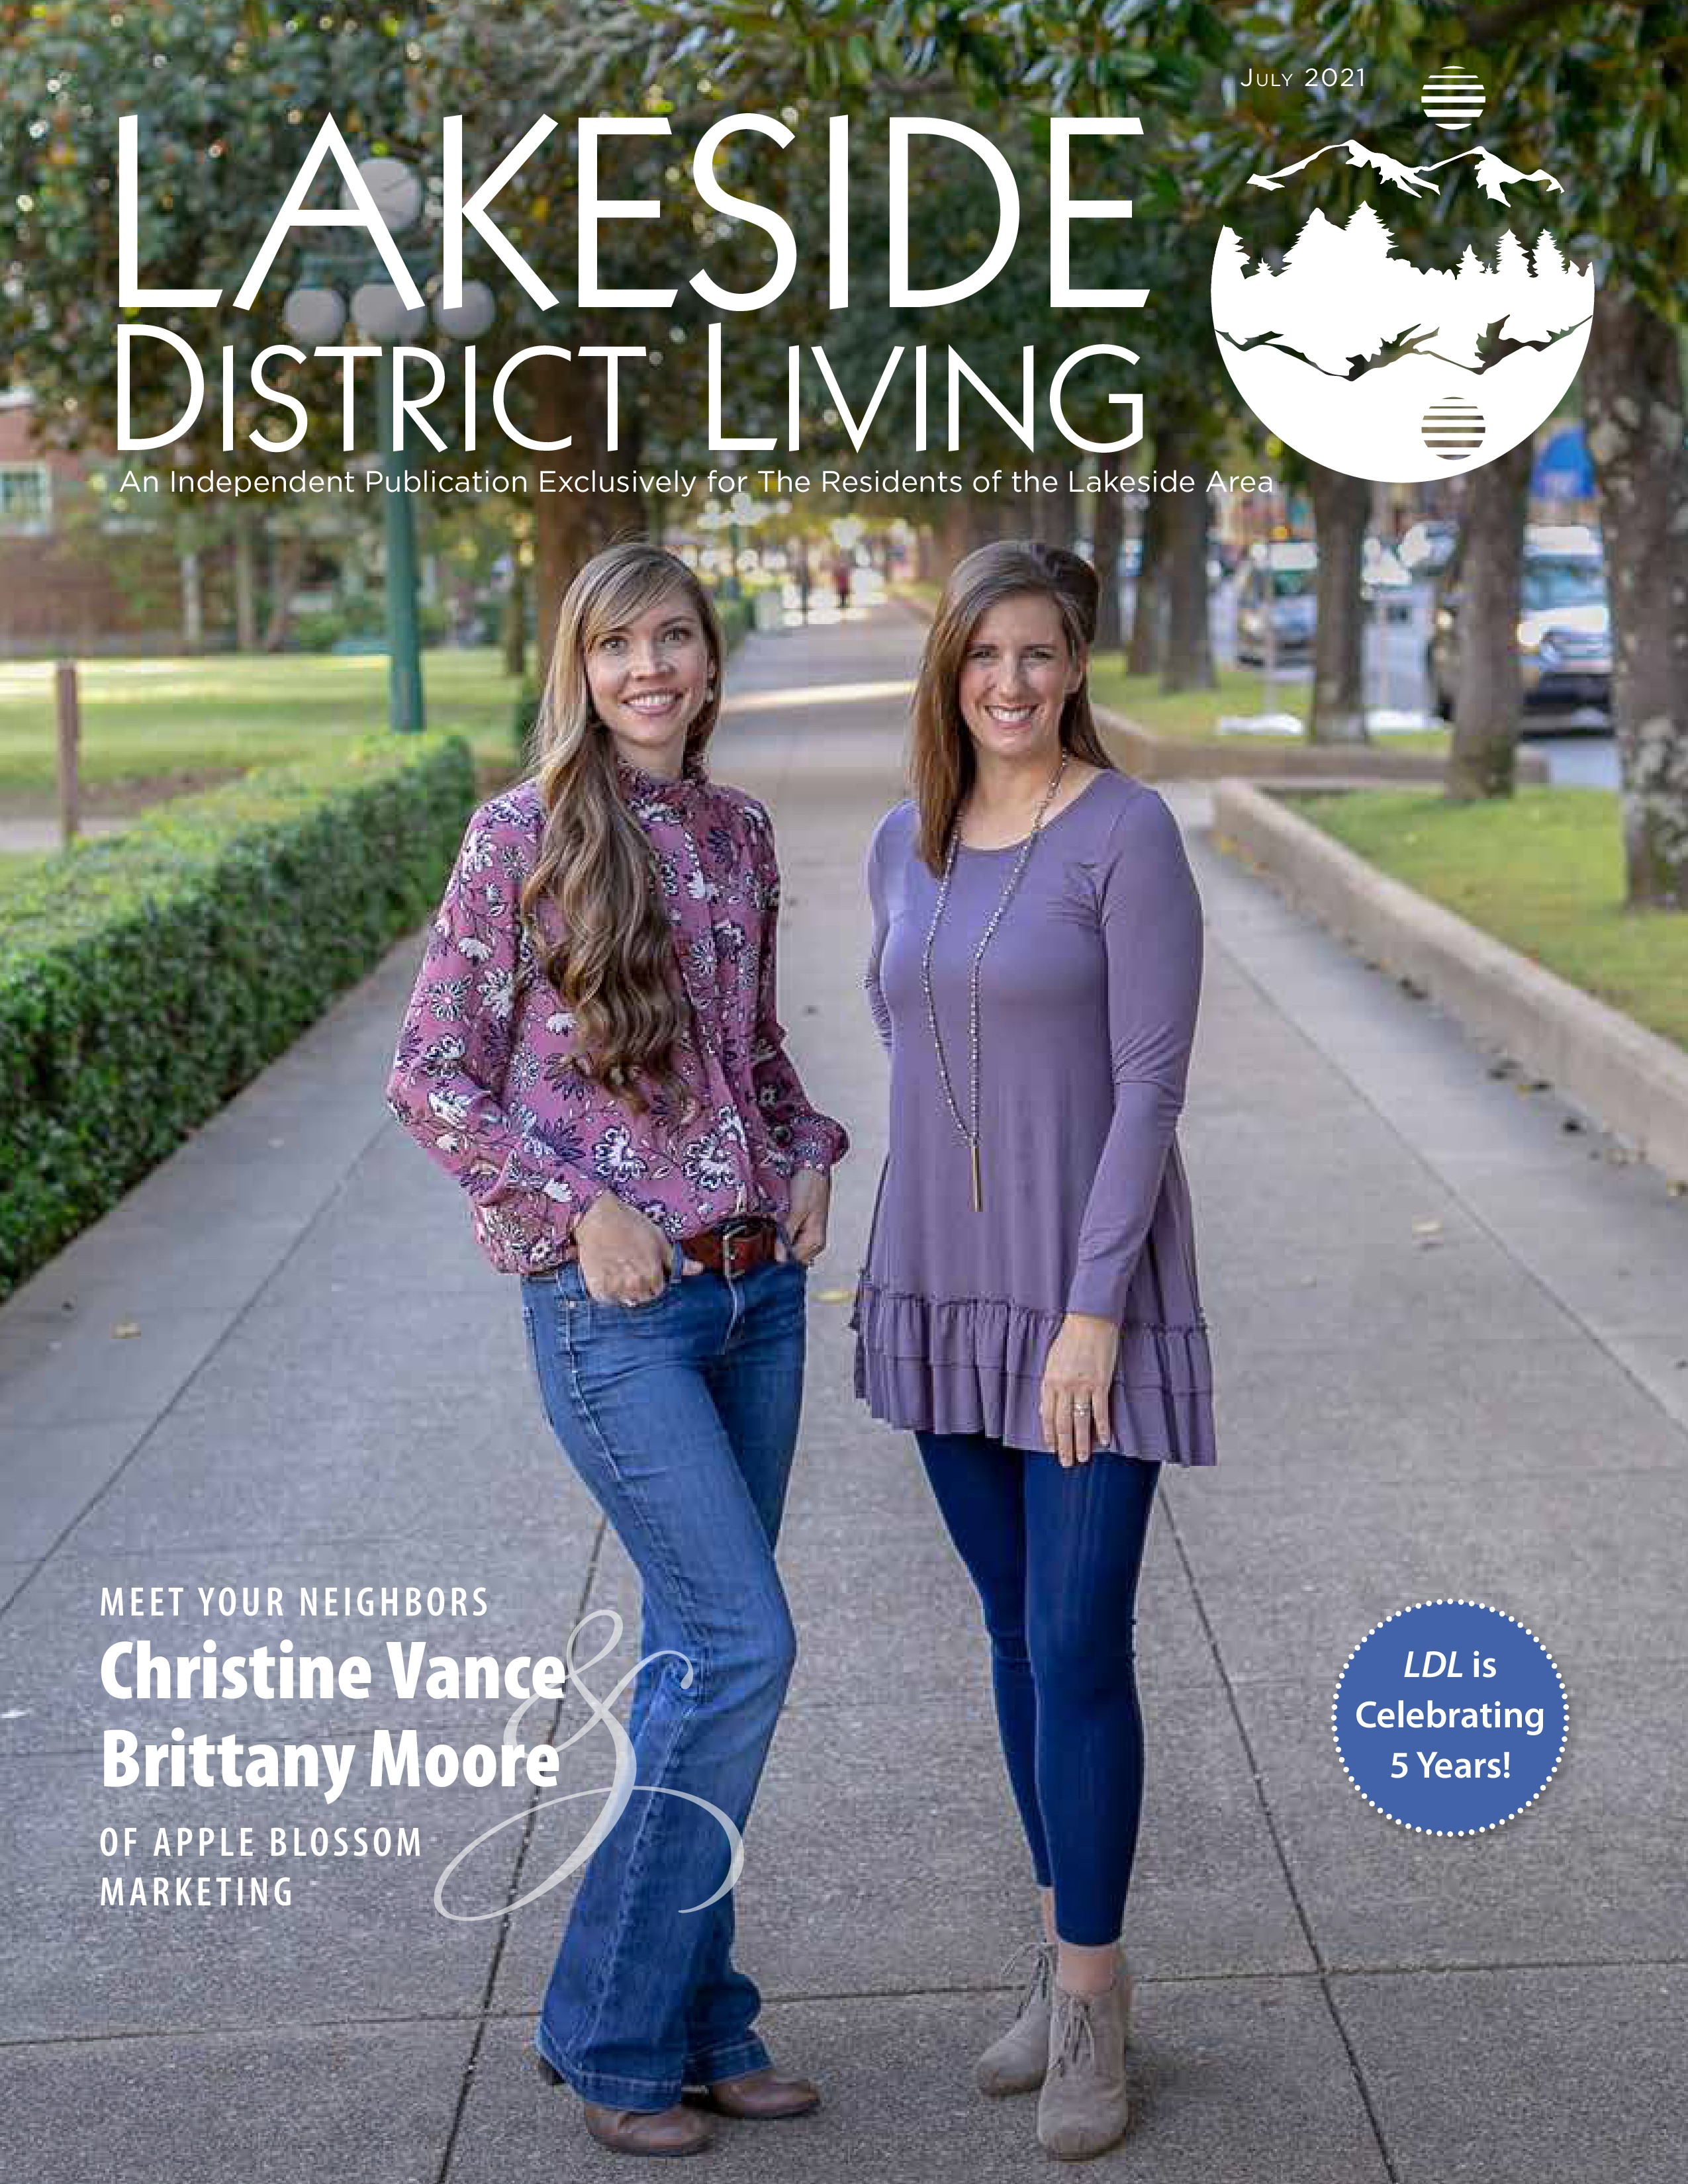 Lakeside District Living 2021-07-01